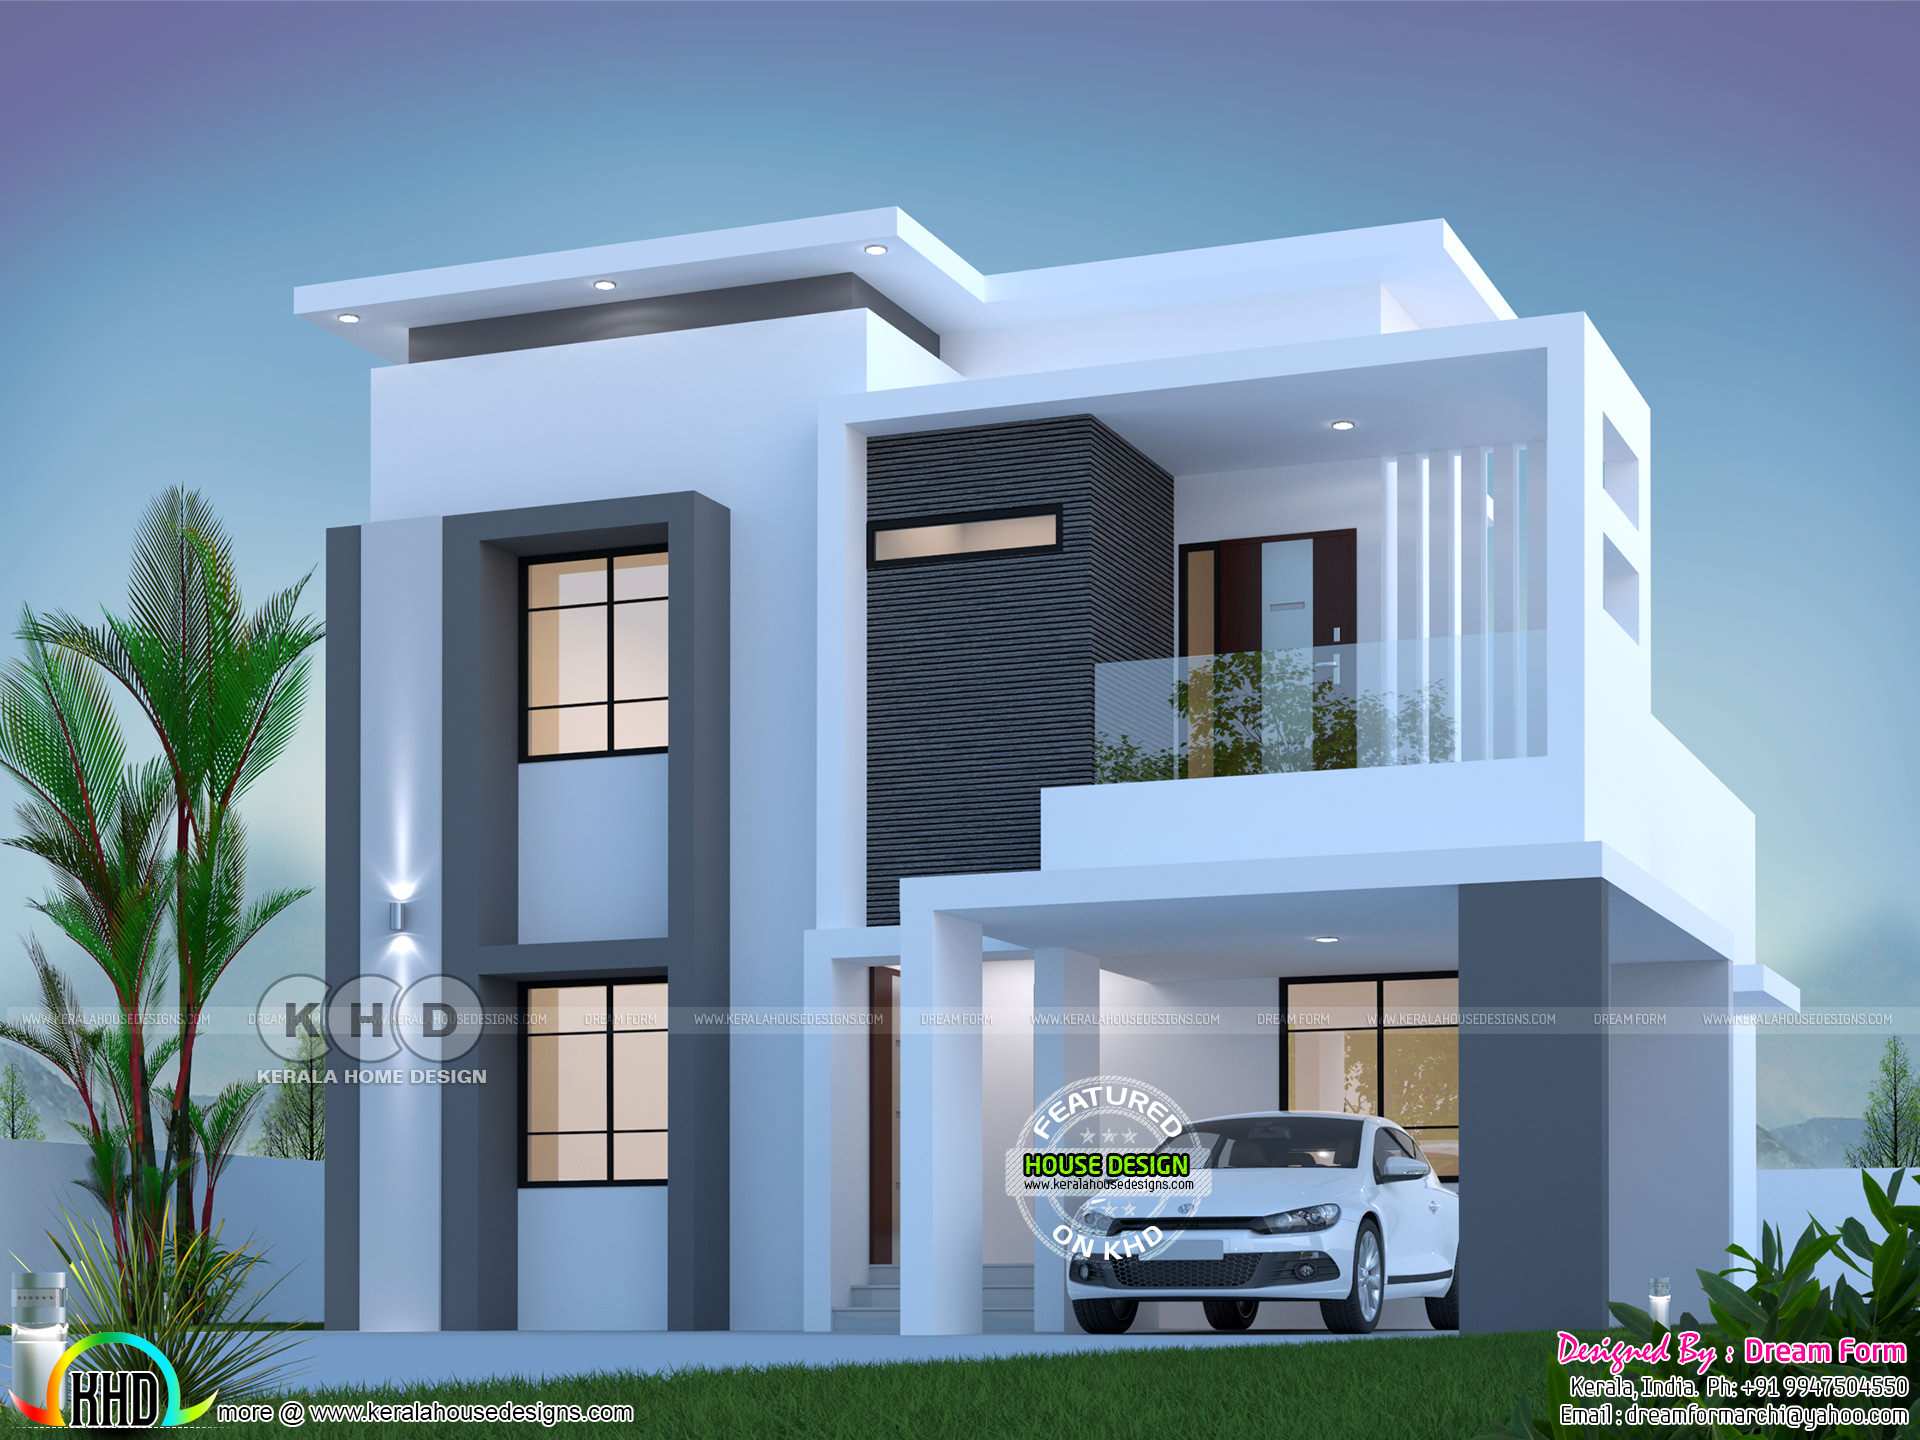 1800 square feet 3 bedroom elegant double storied house ... on double gable front house design, indian modern houses interior design, double floor living room, double storey house design, colonial style home design, double floor lamps, modern double story home design,